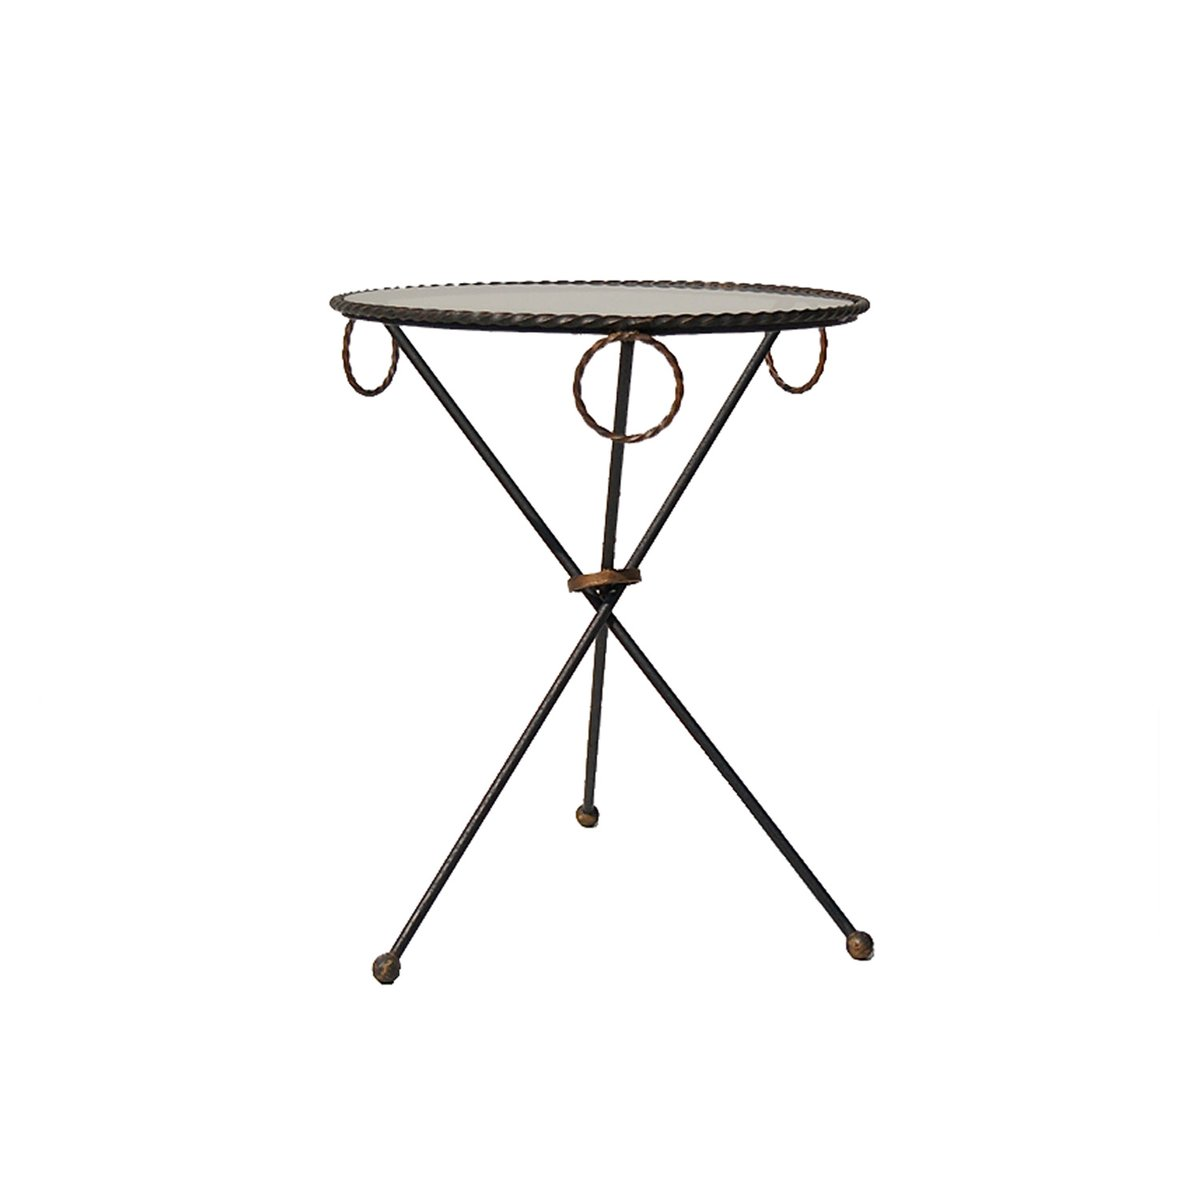 vintage french tripod side table for sale at pamono. Black Bedroom Furniture Sets. Home Design Ideas